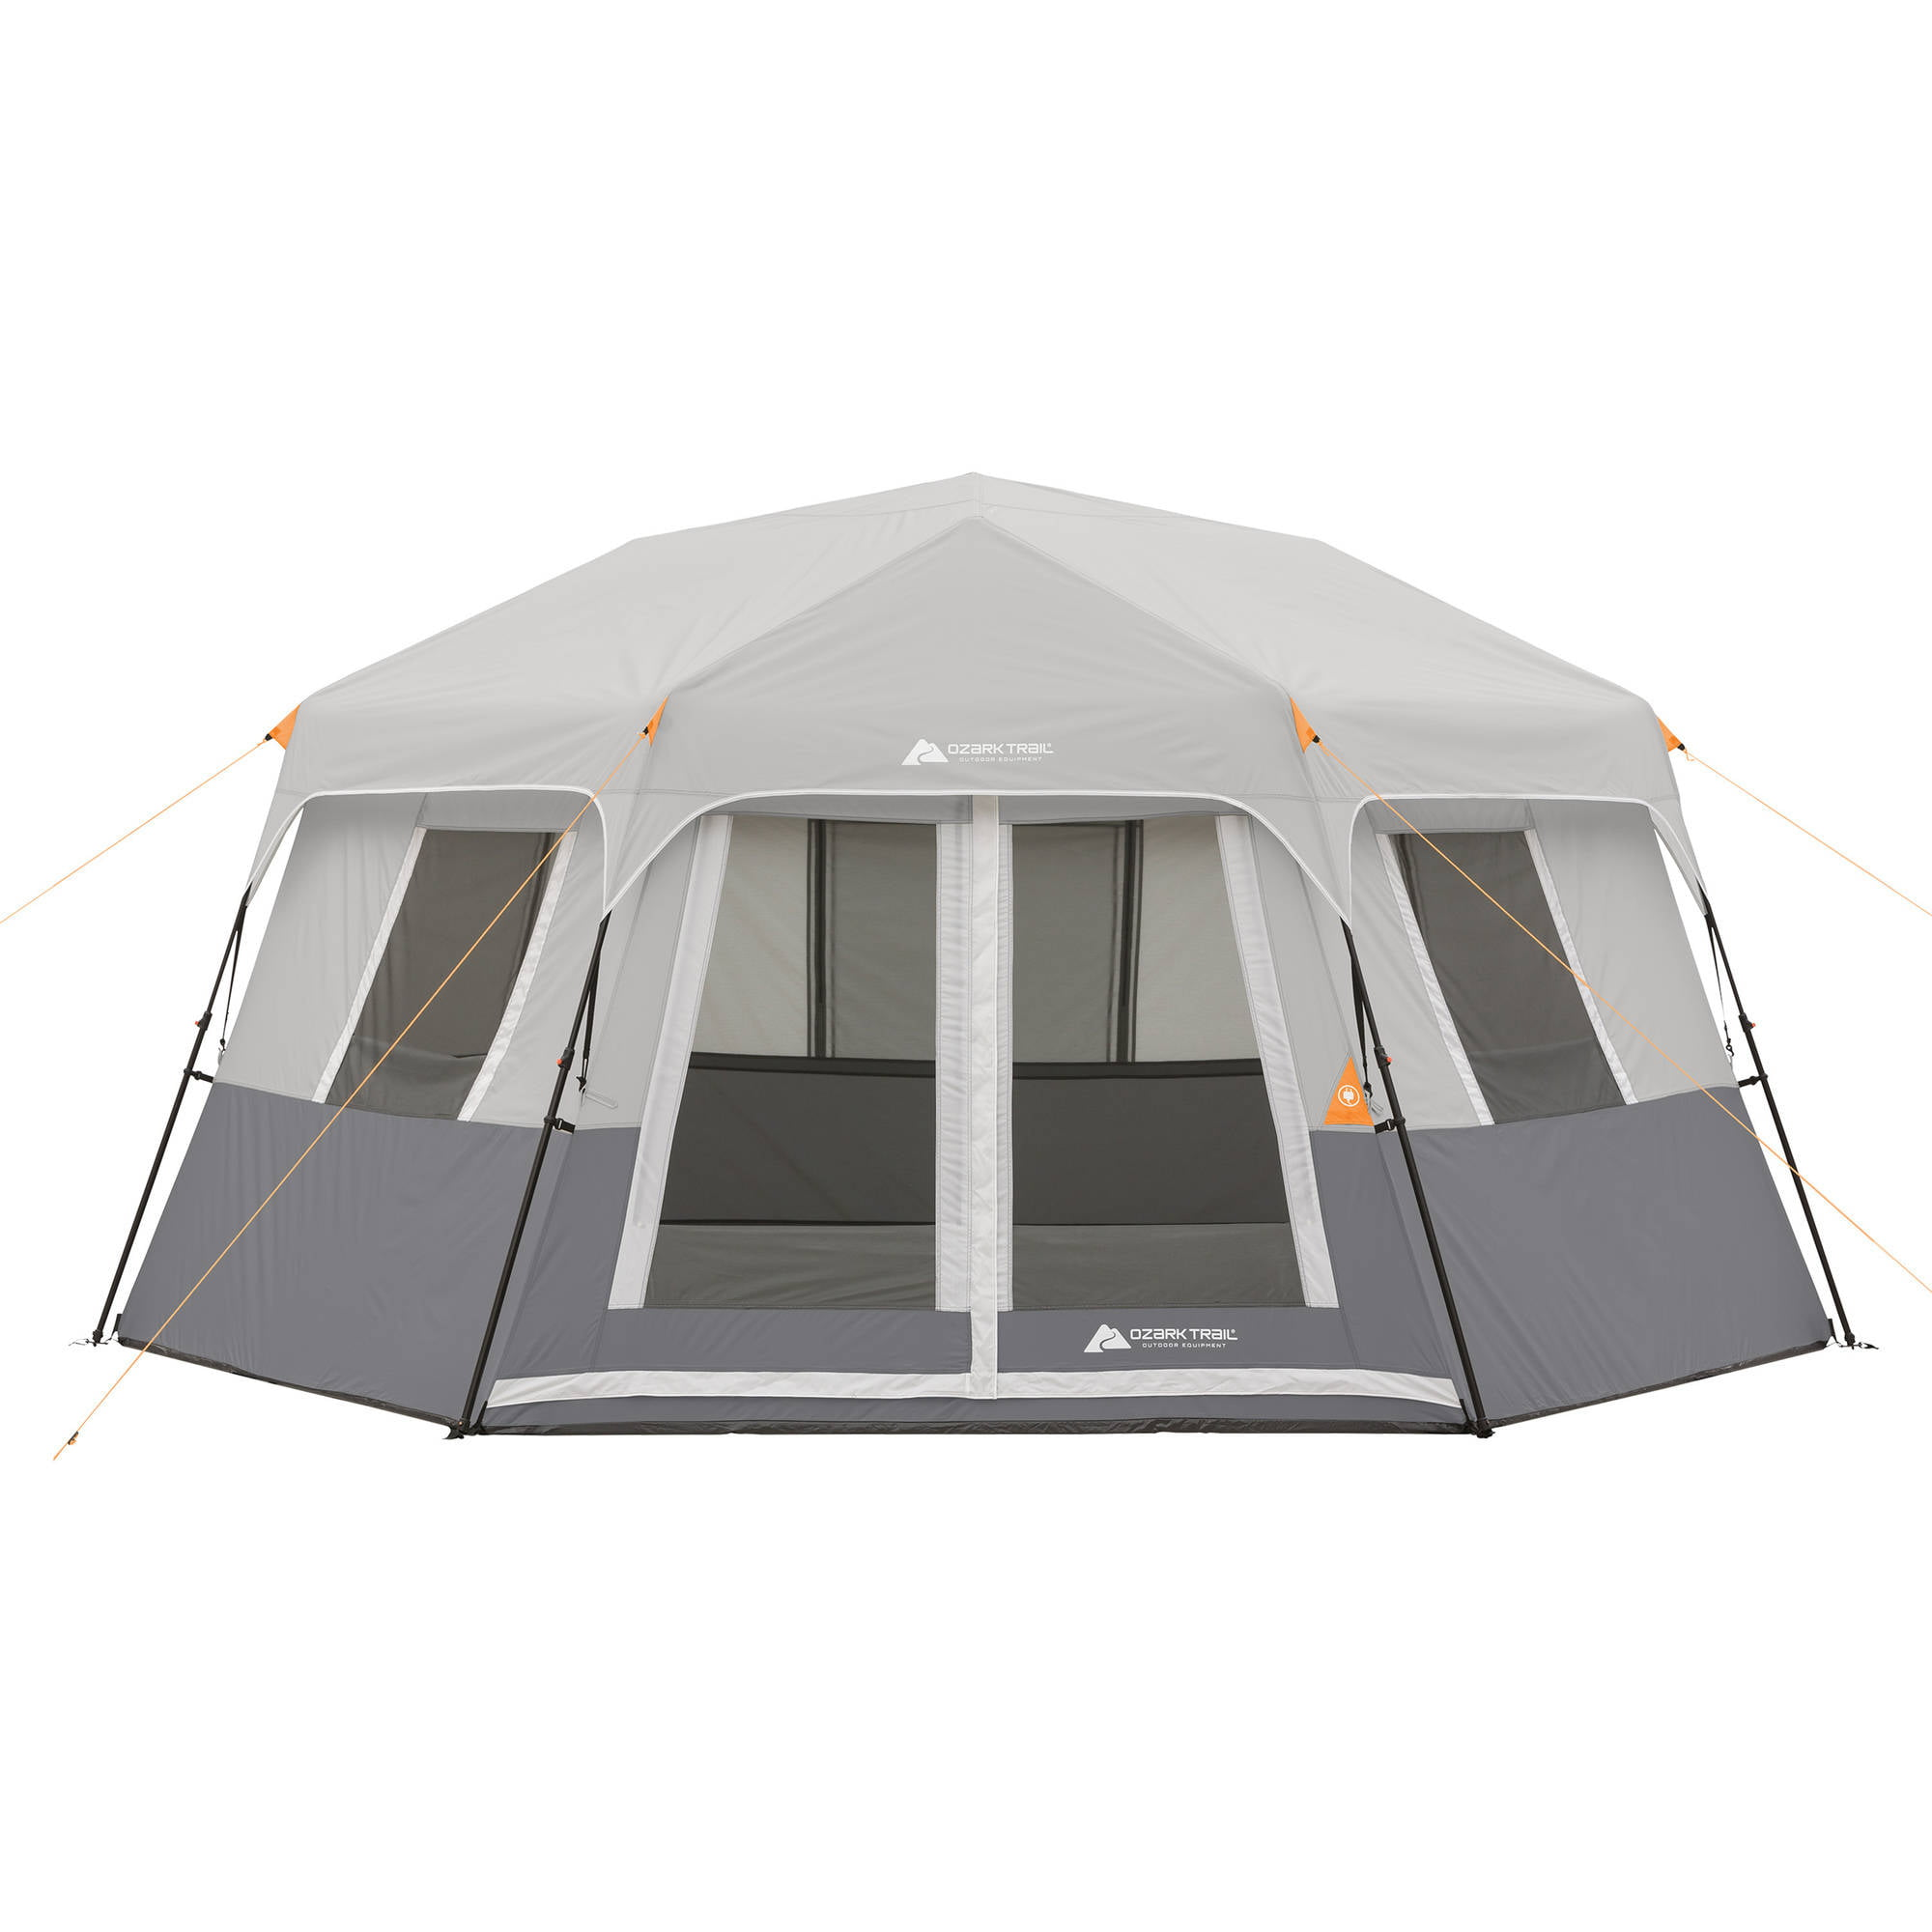 Ozark Trail 8-Person Instant Hexagon Cabin Tent by Bohemian Travel Gear Limited